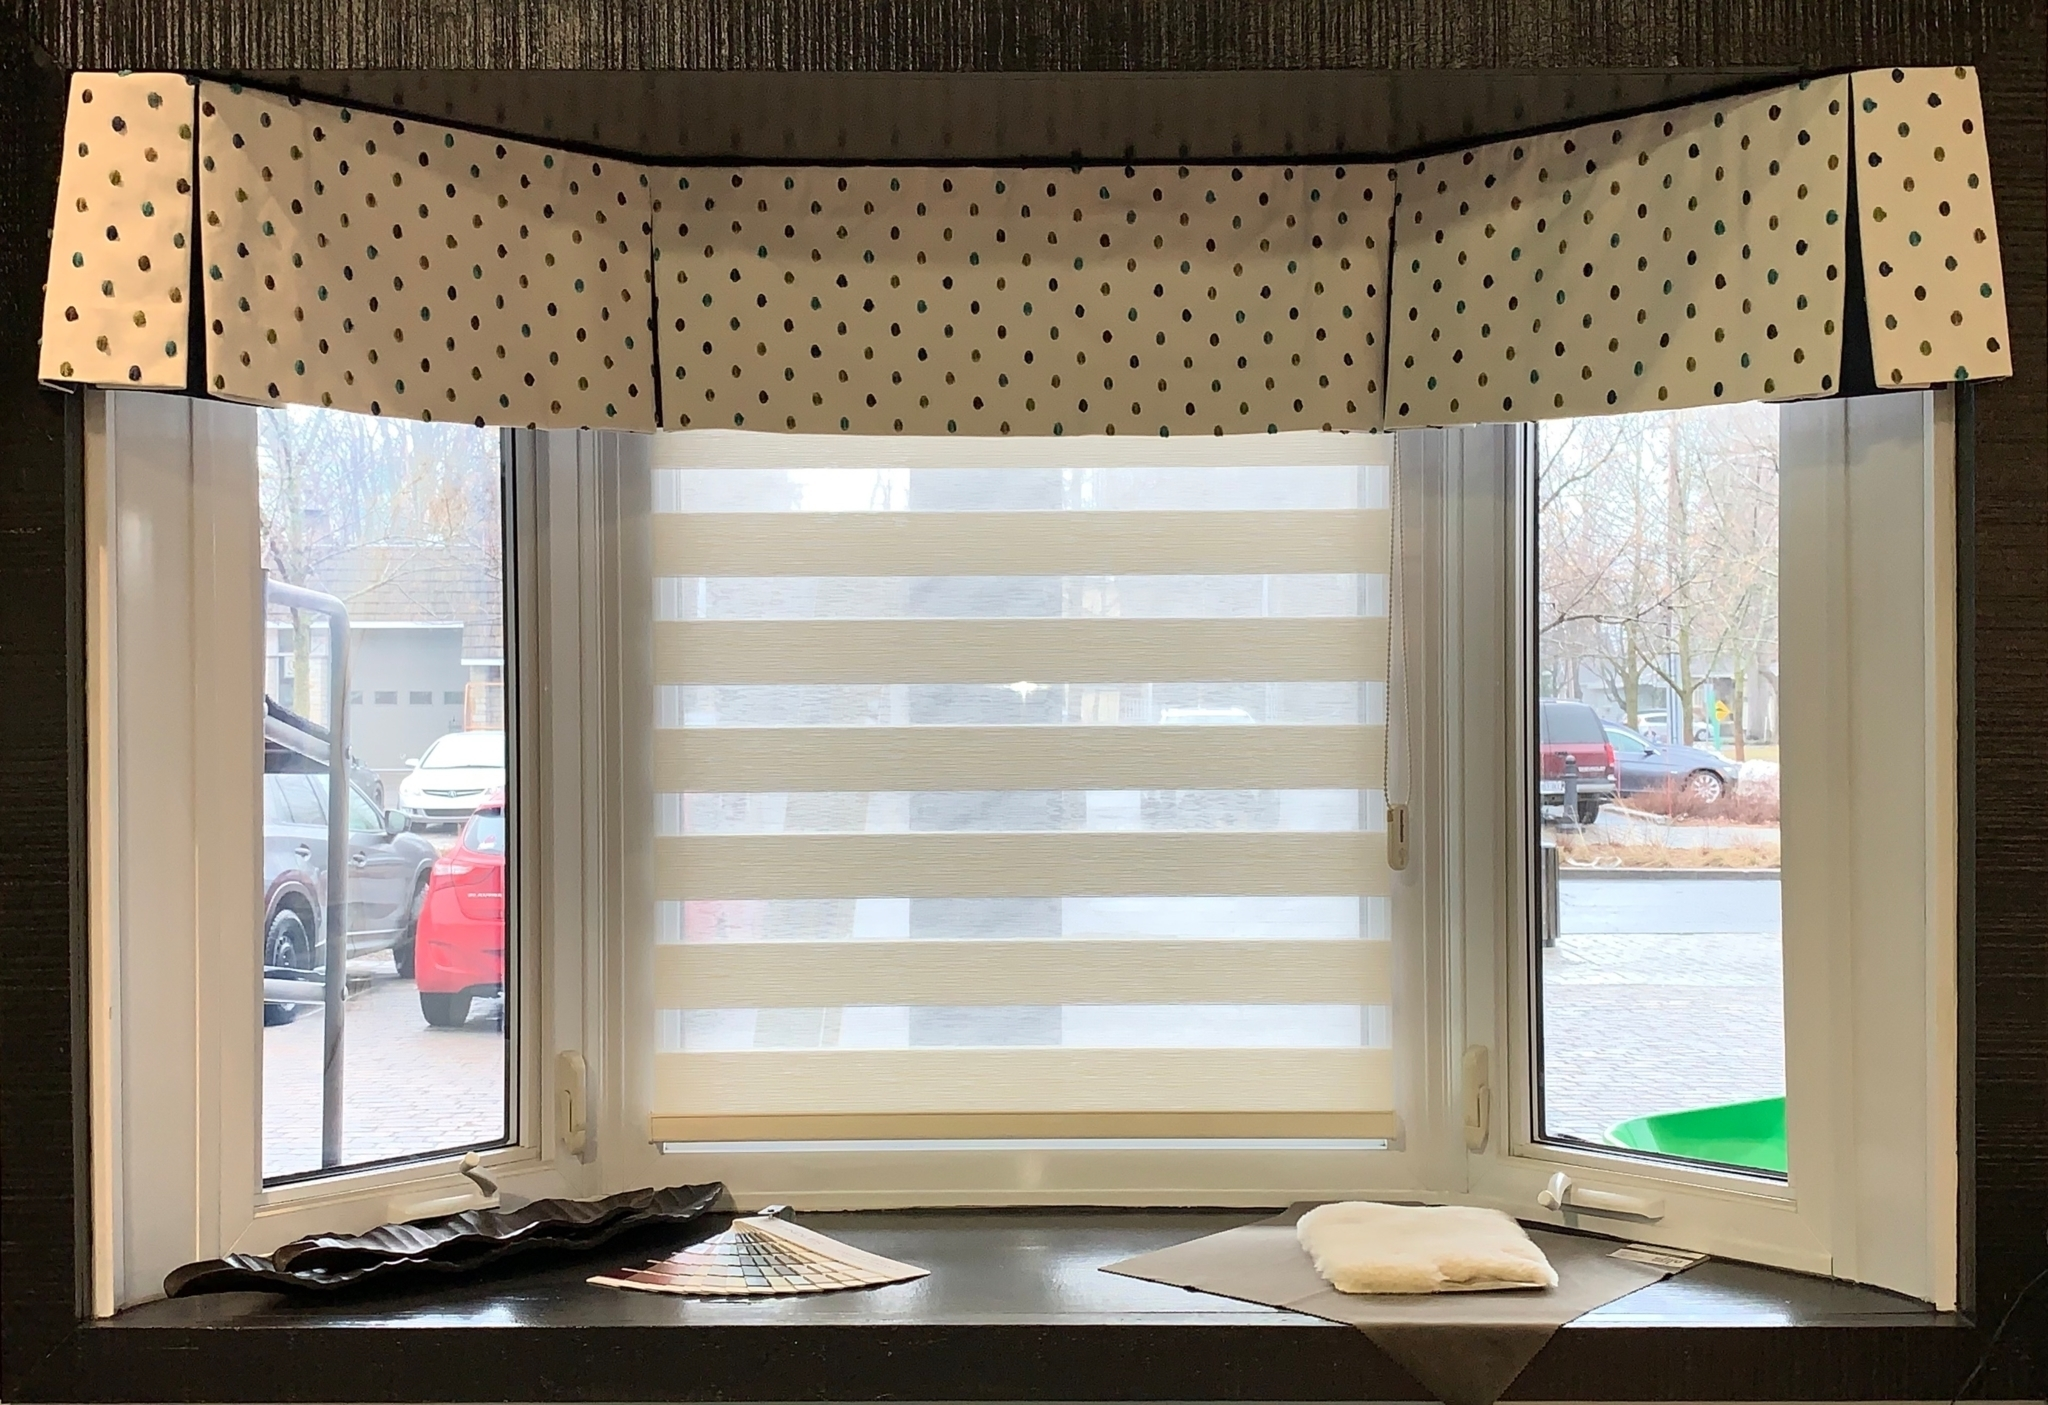 Hub Quincaillerie à Beaconsfield: Custom blinds/shades and drapery/valances